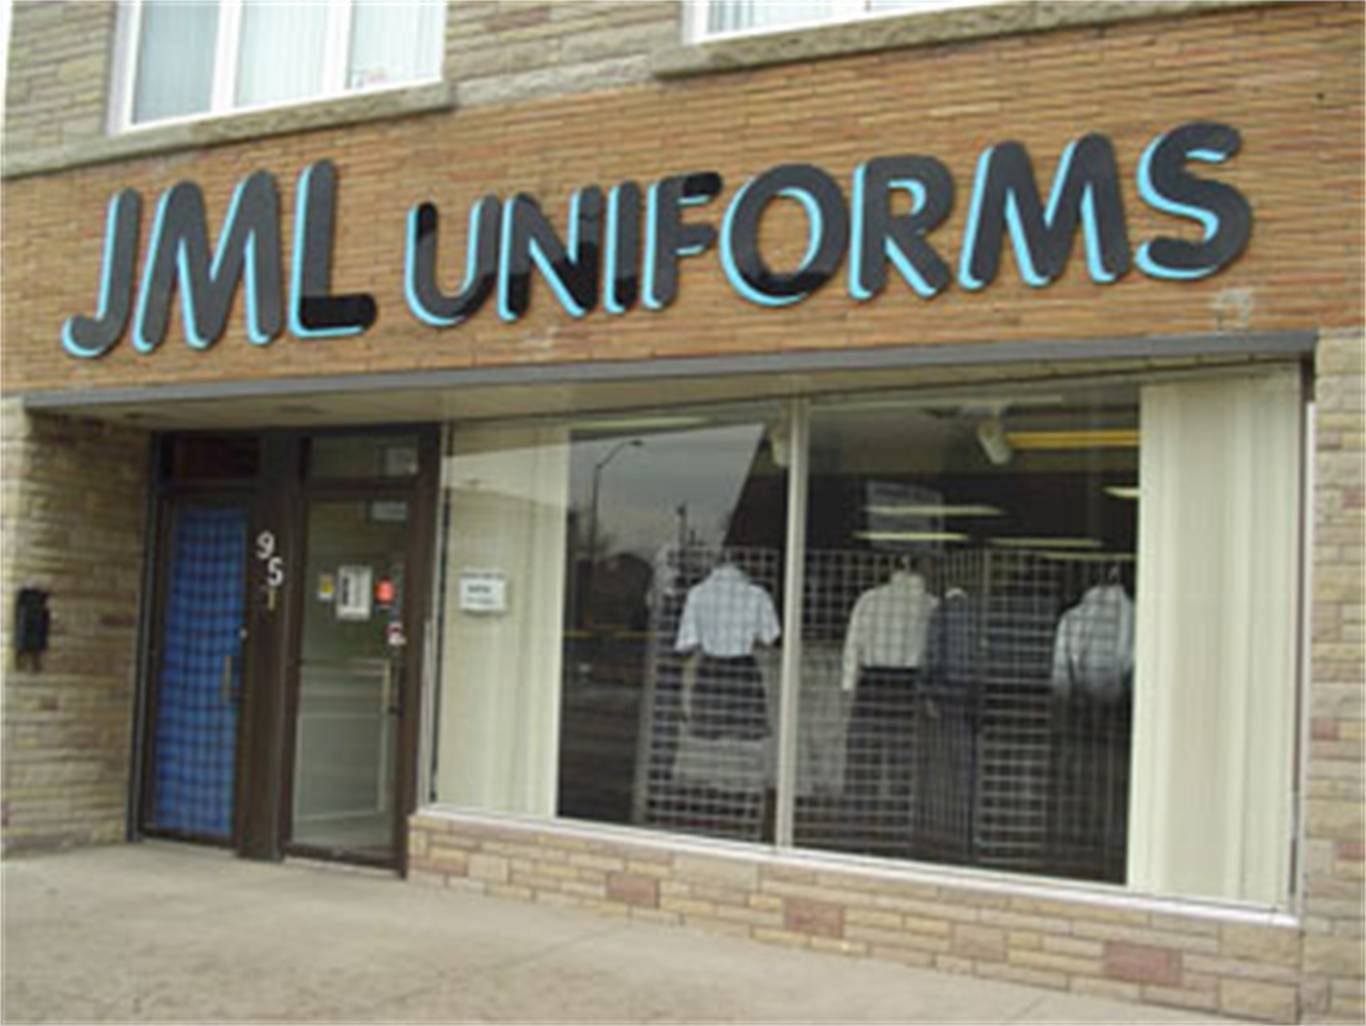 JML Unifroms Weblink